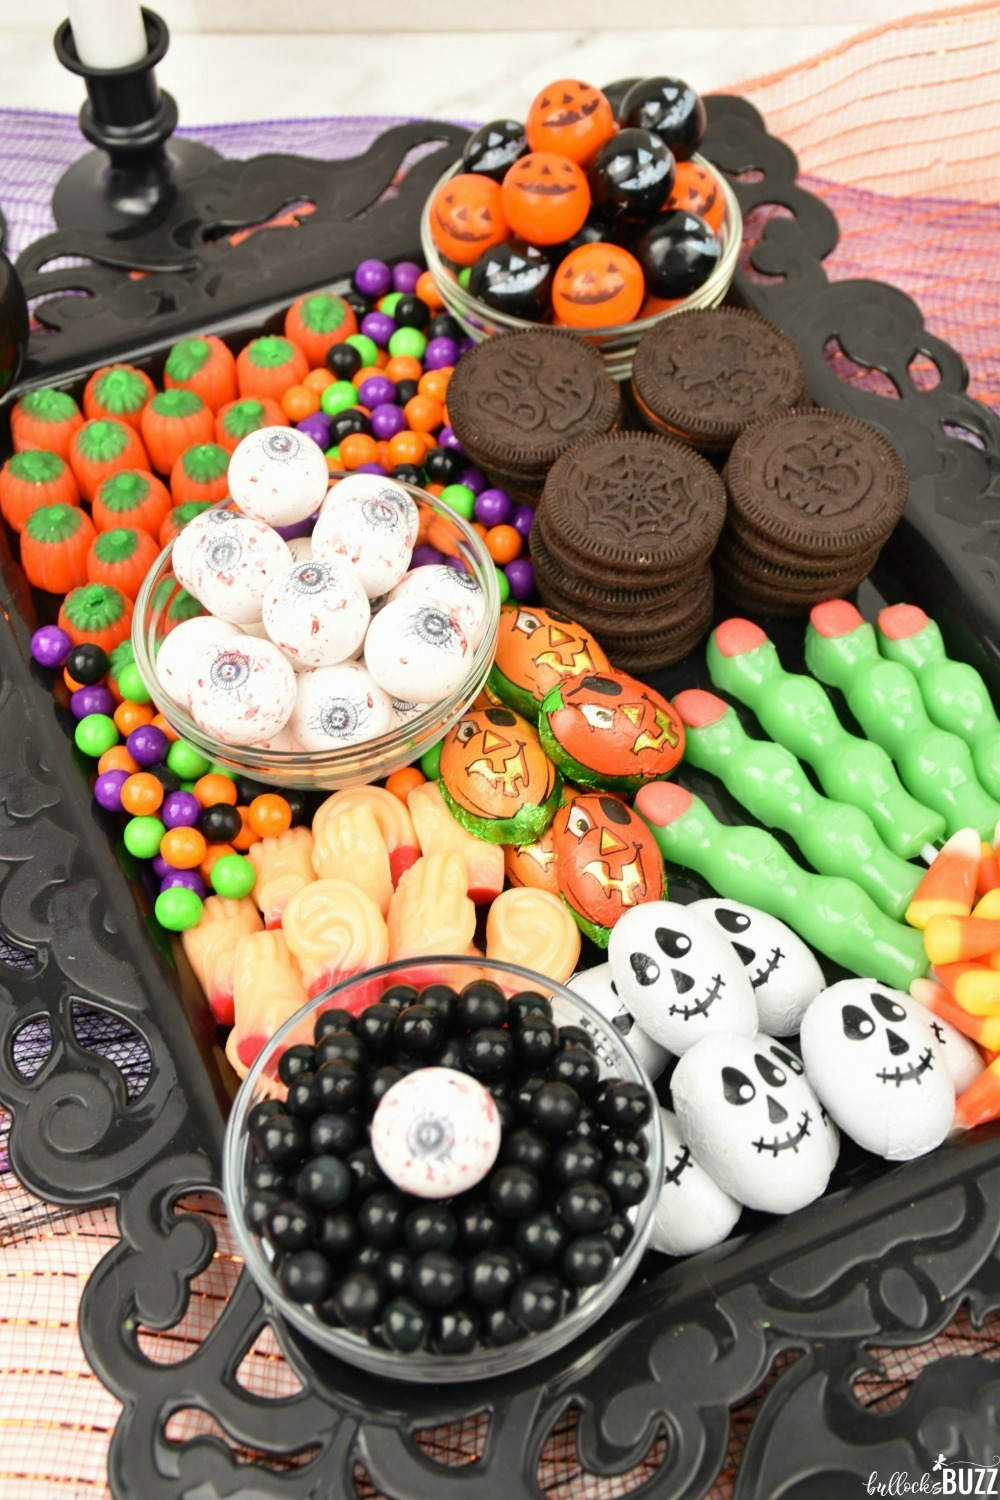 Filled with traditional Halloween candies, this frightfully sweet Halloween Candy Charcuterie Board has it all!